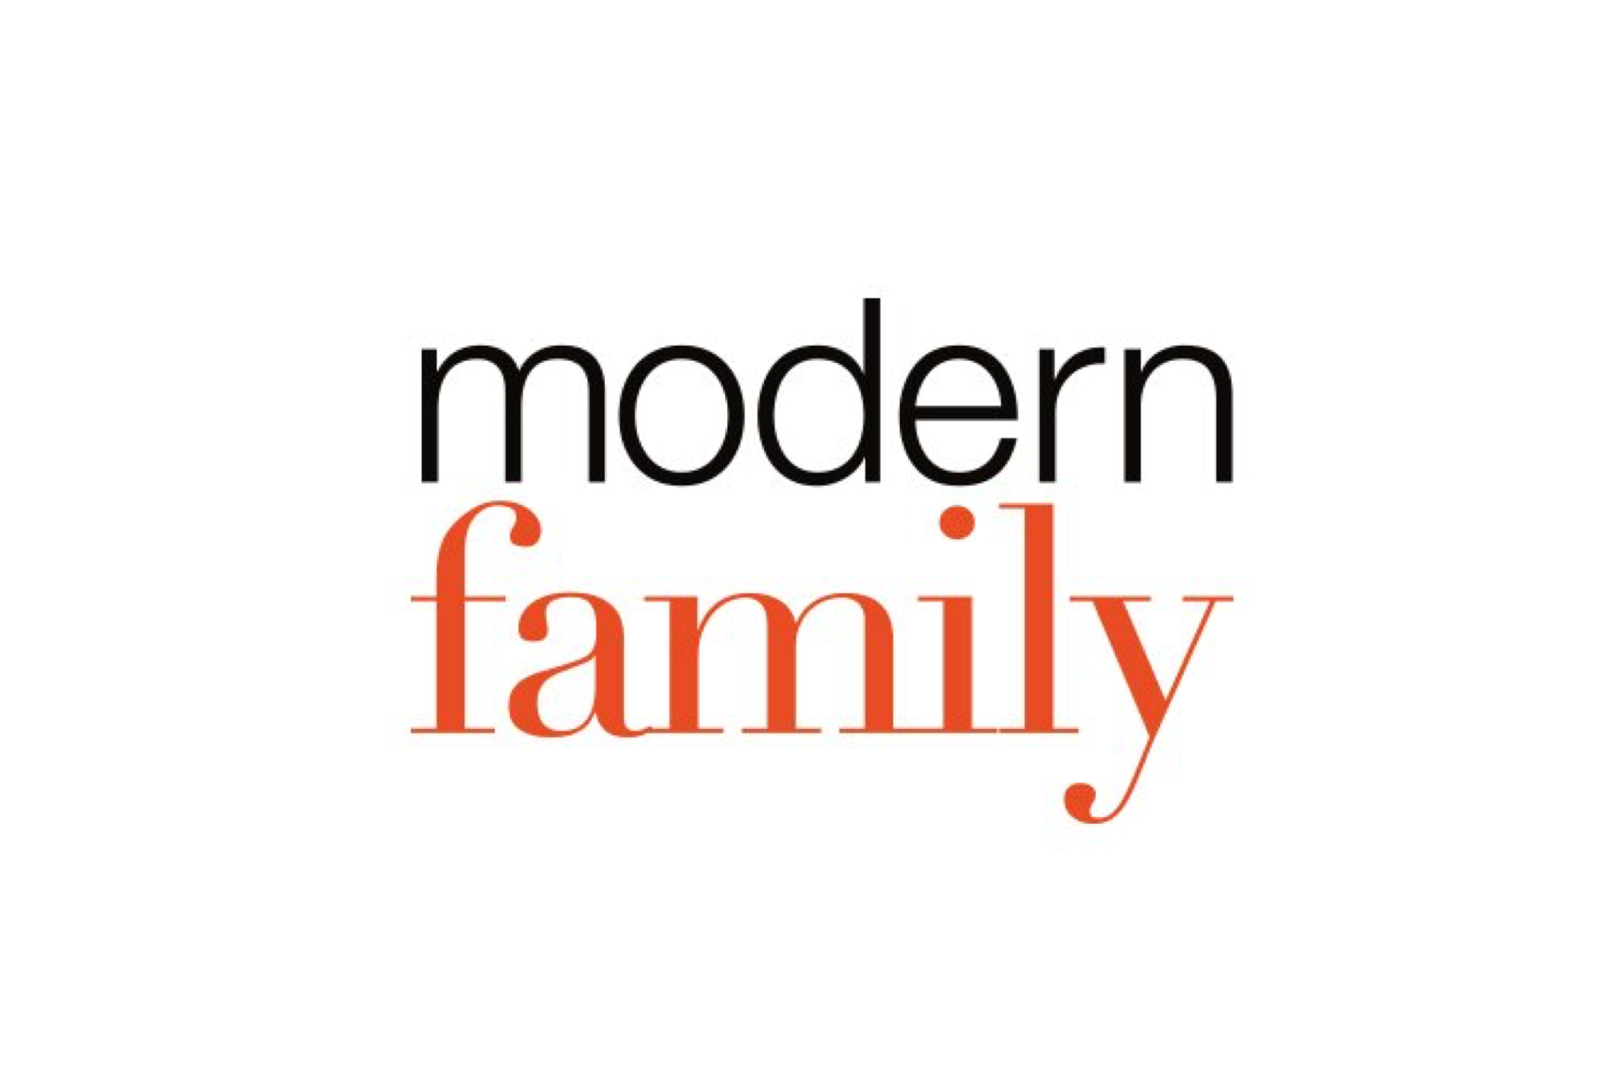 audioboom modern family season 1 episode 2 19 21 rh audioboom com  modern family logo font